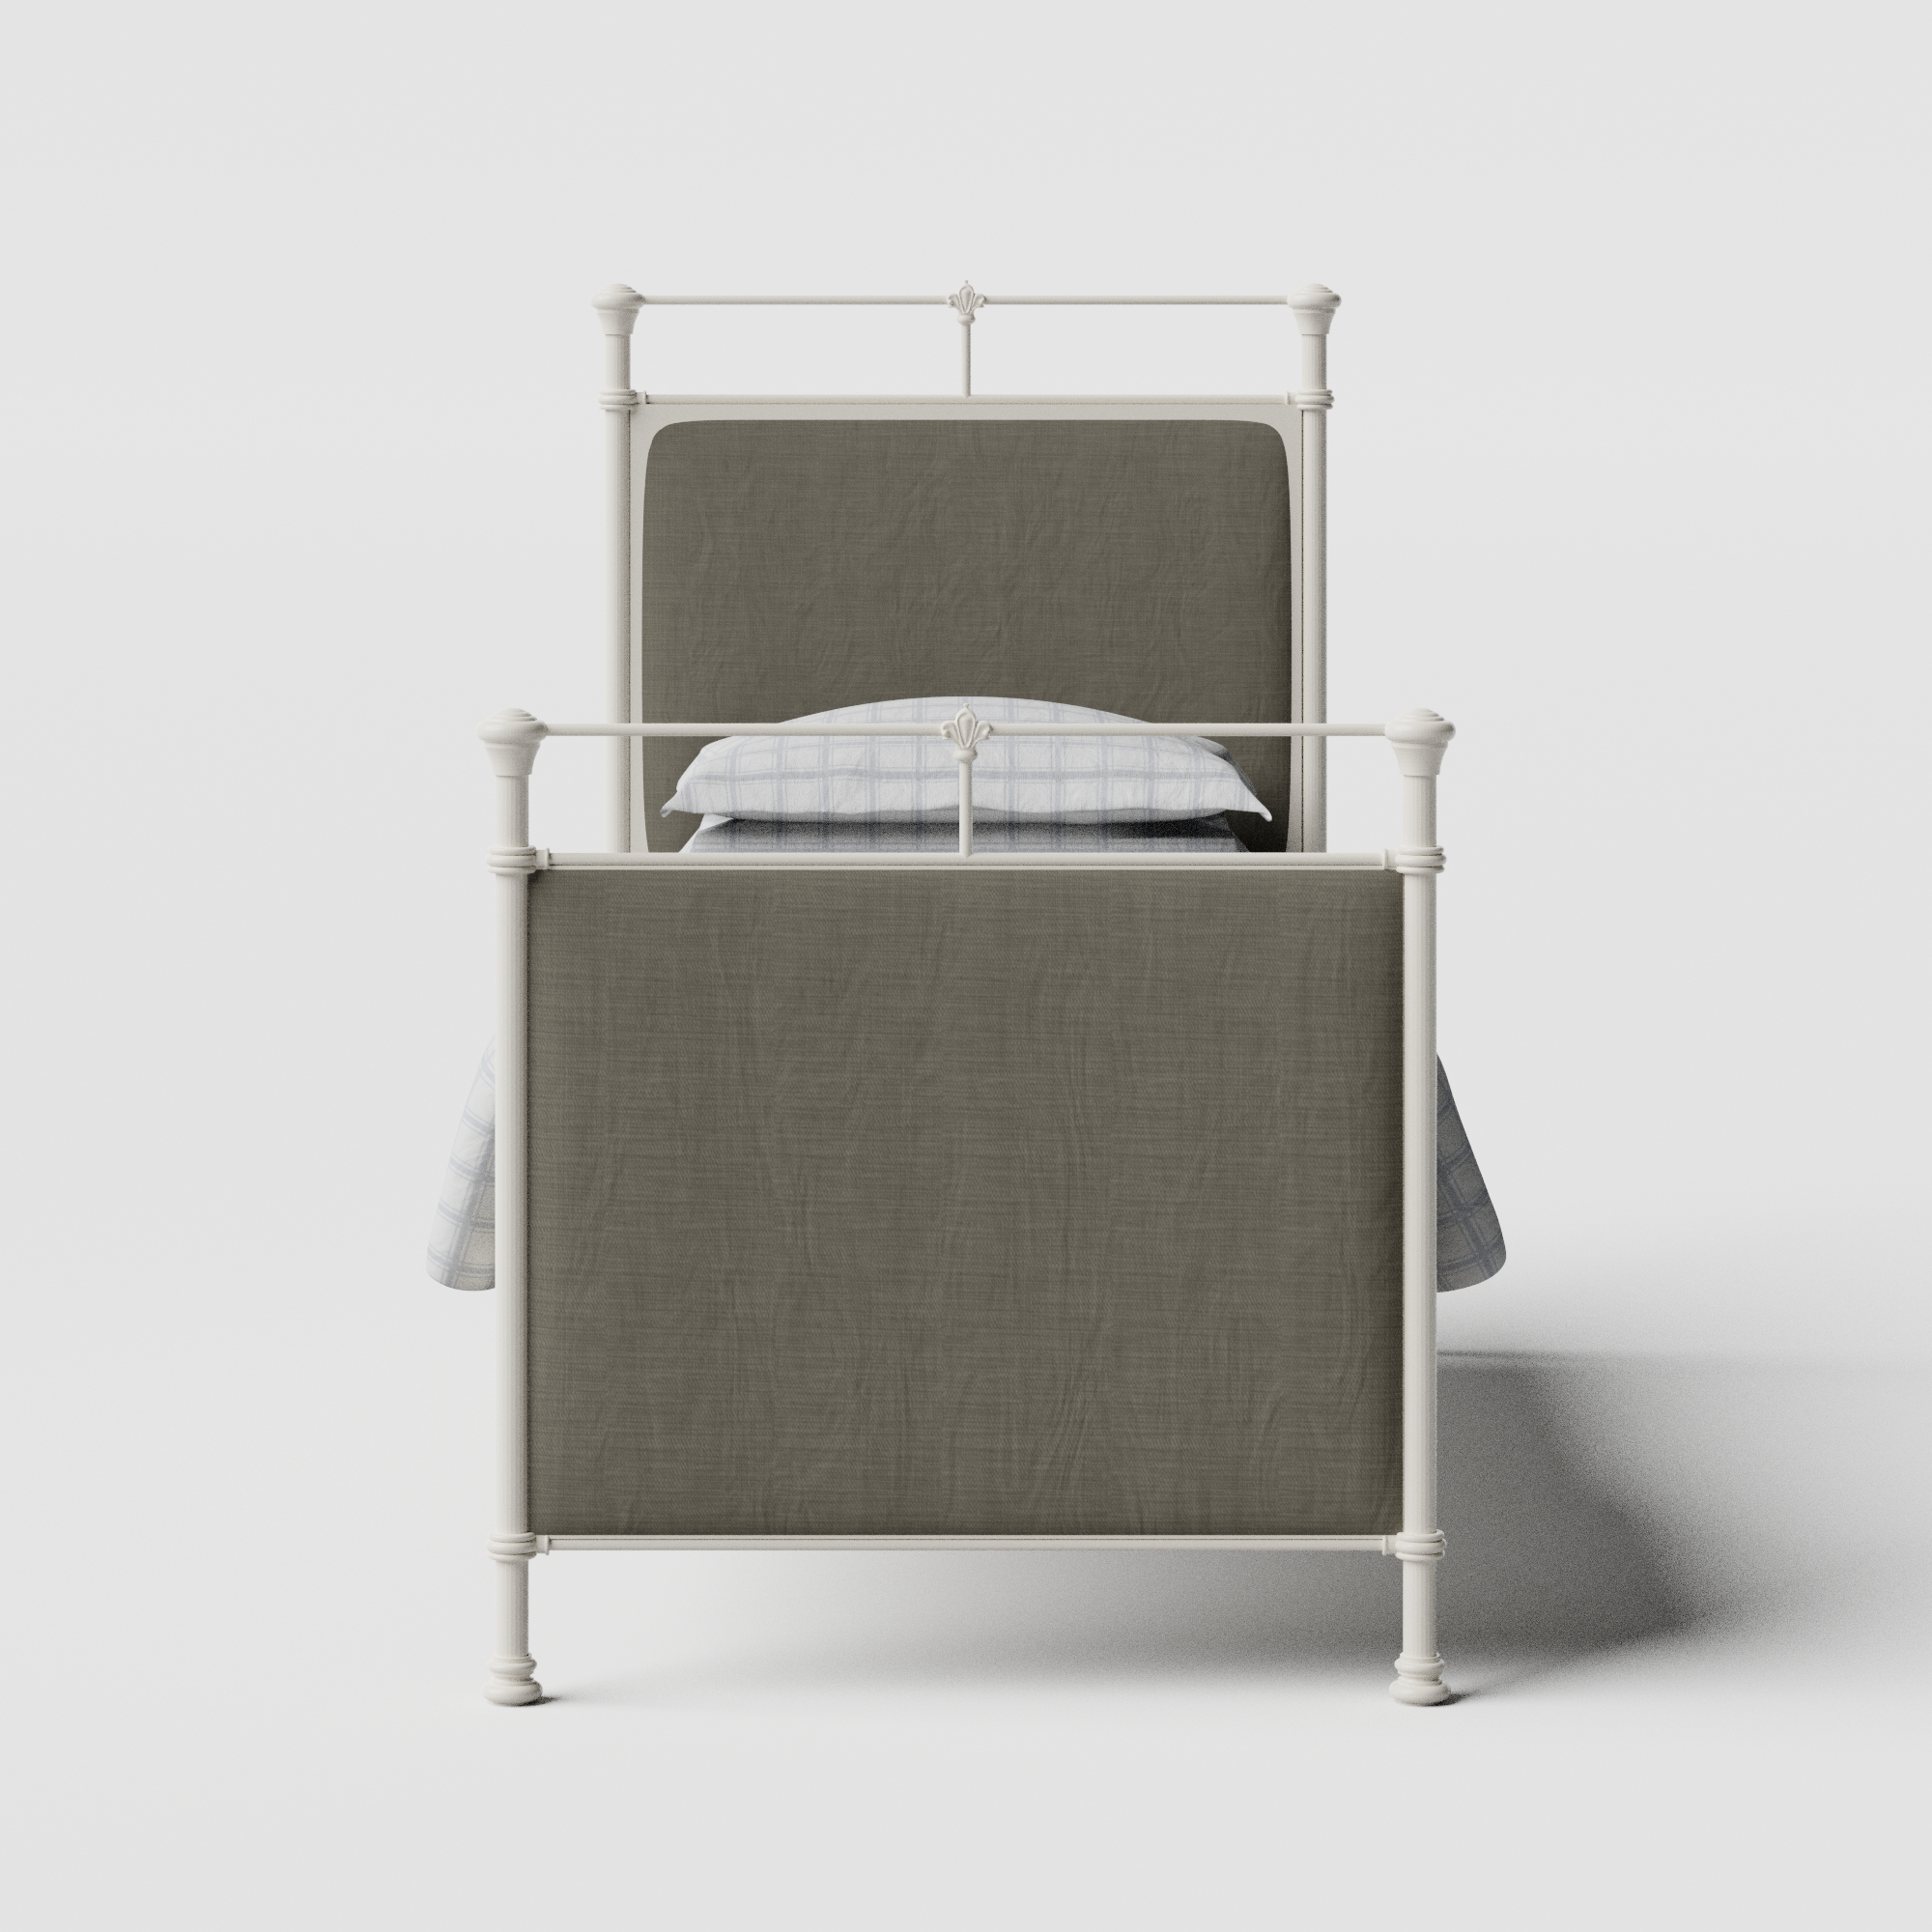 Lille iron/metal single bed in ivory